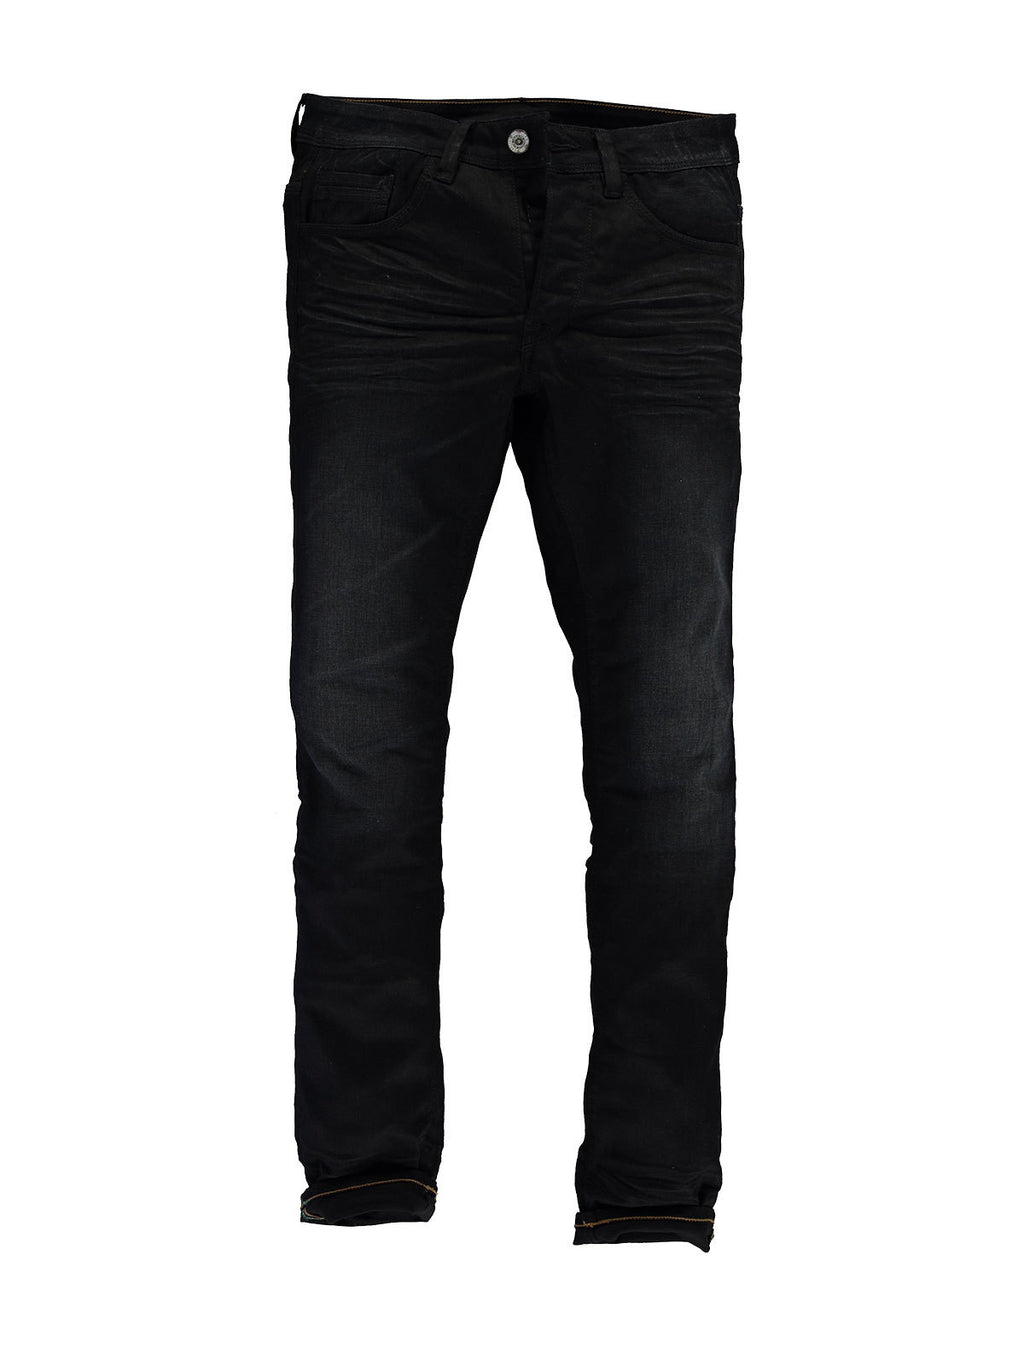 Garcia Men's Savio Black Jean - LAST PAIR REDUCED!!